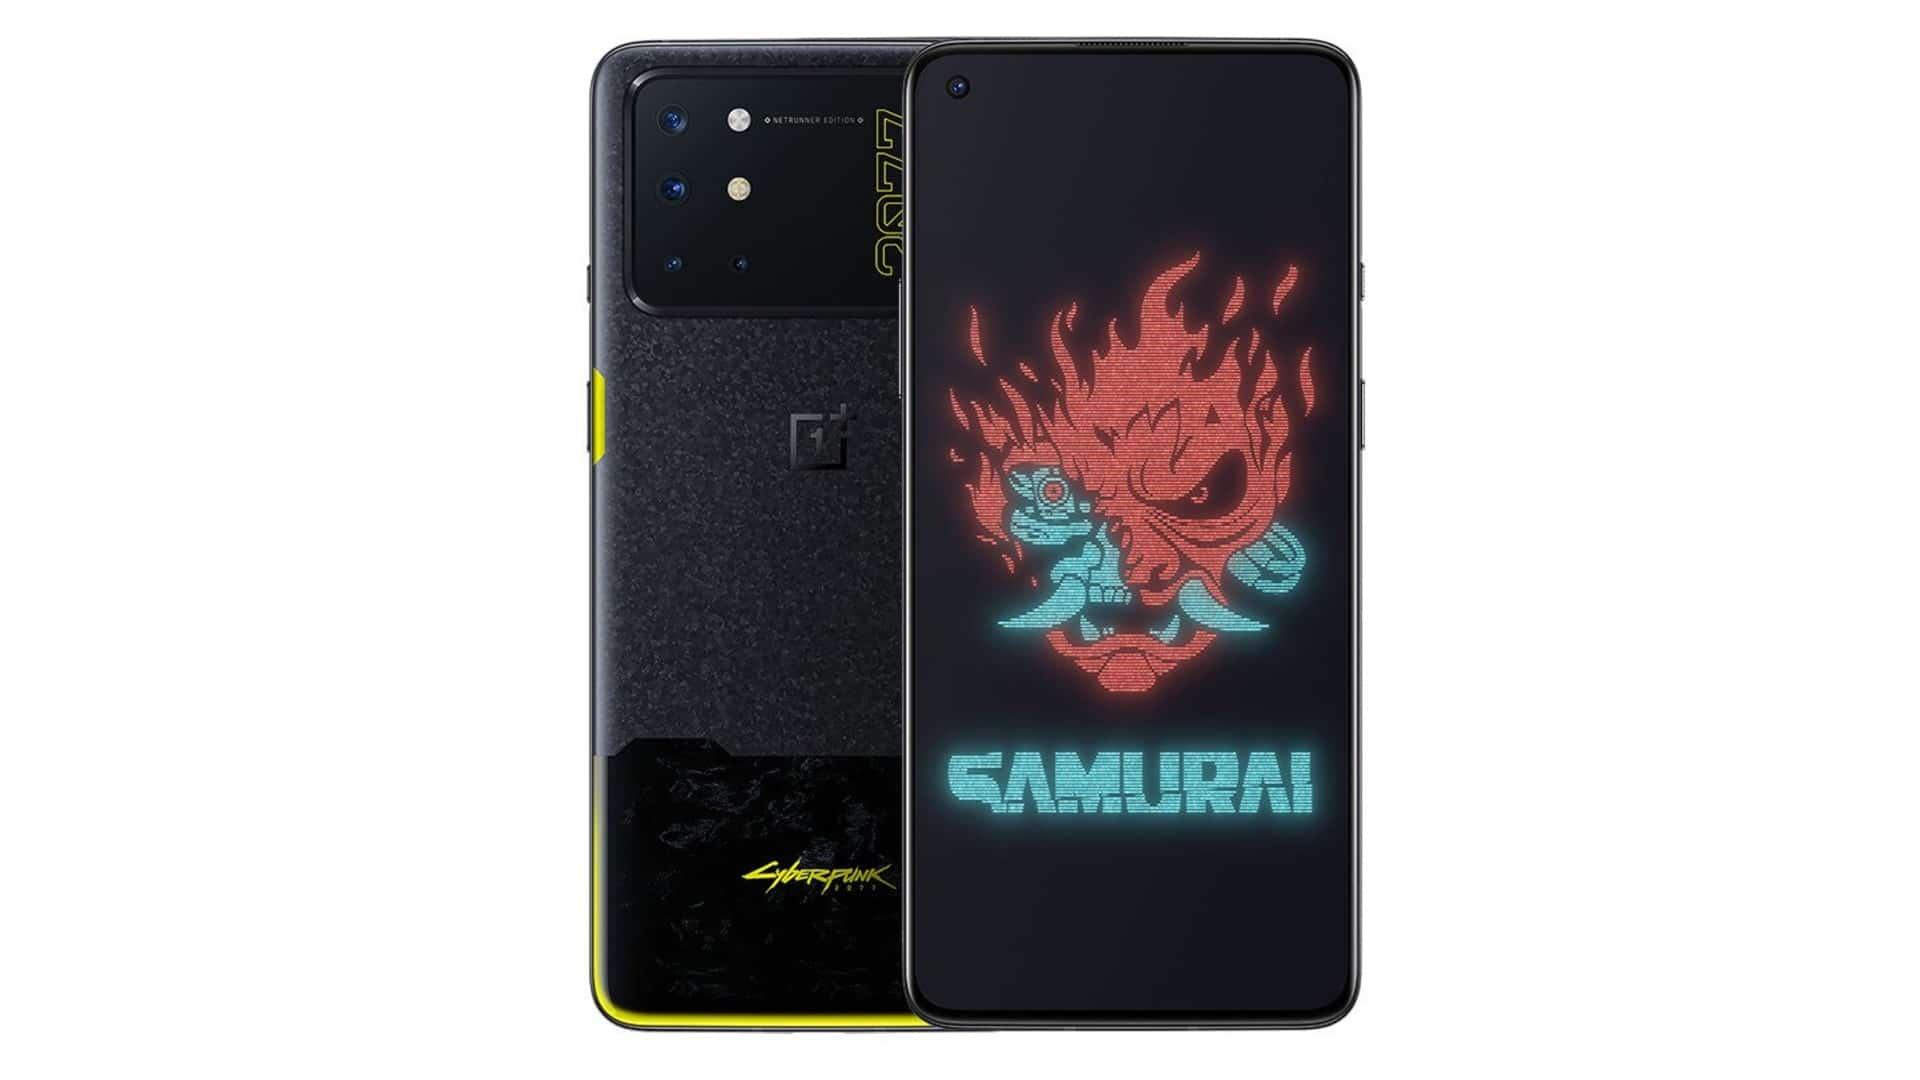 OnePlus-8T-Cuyberpunk-edition-design